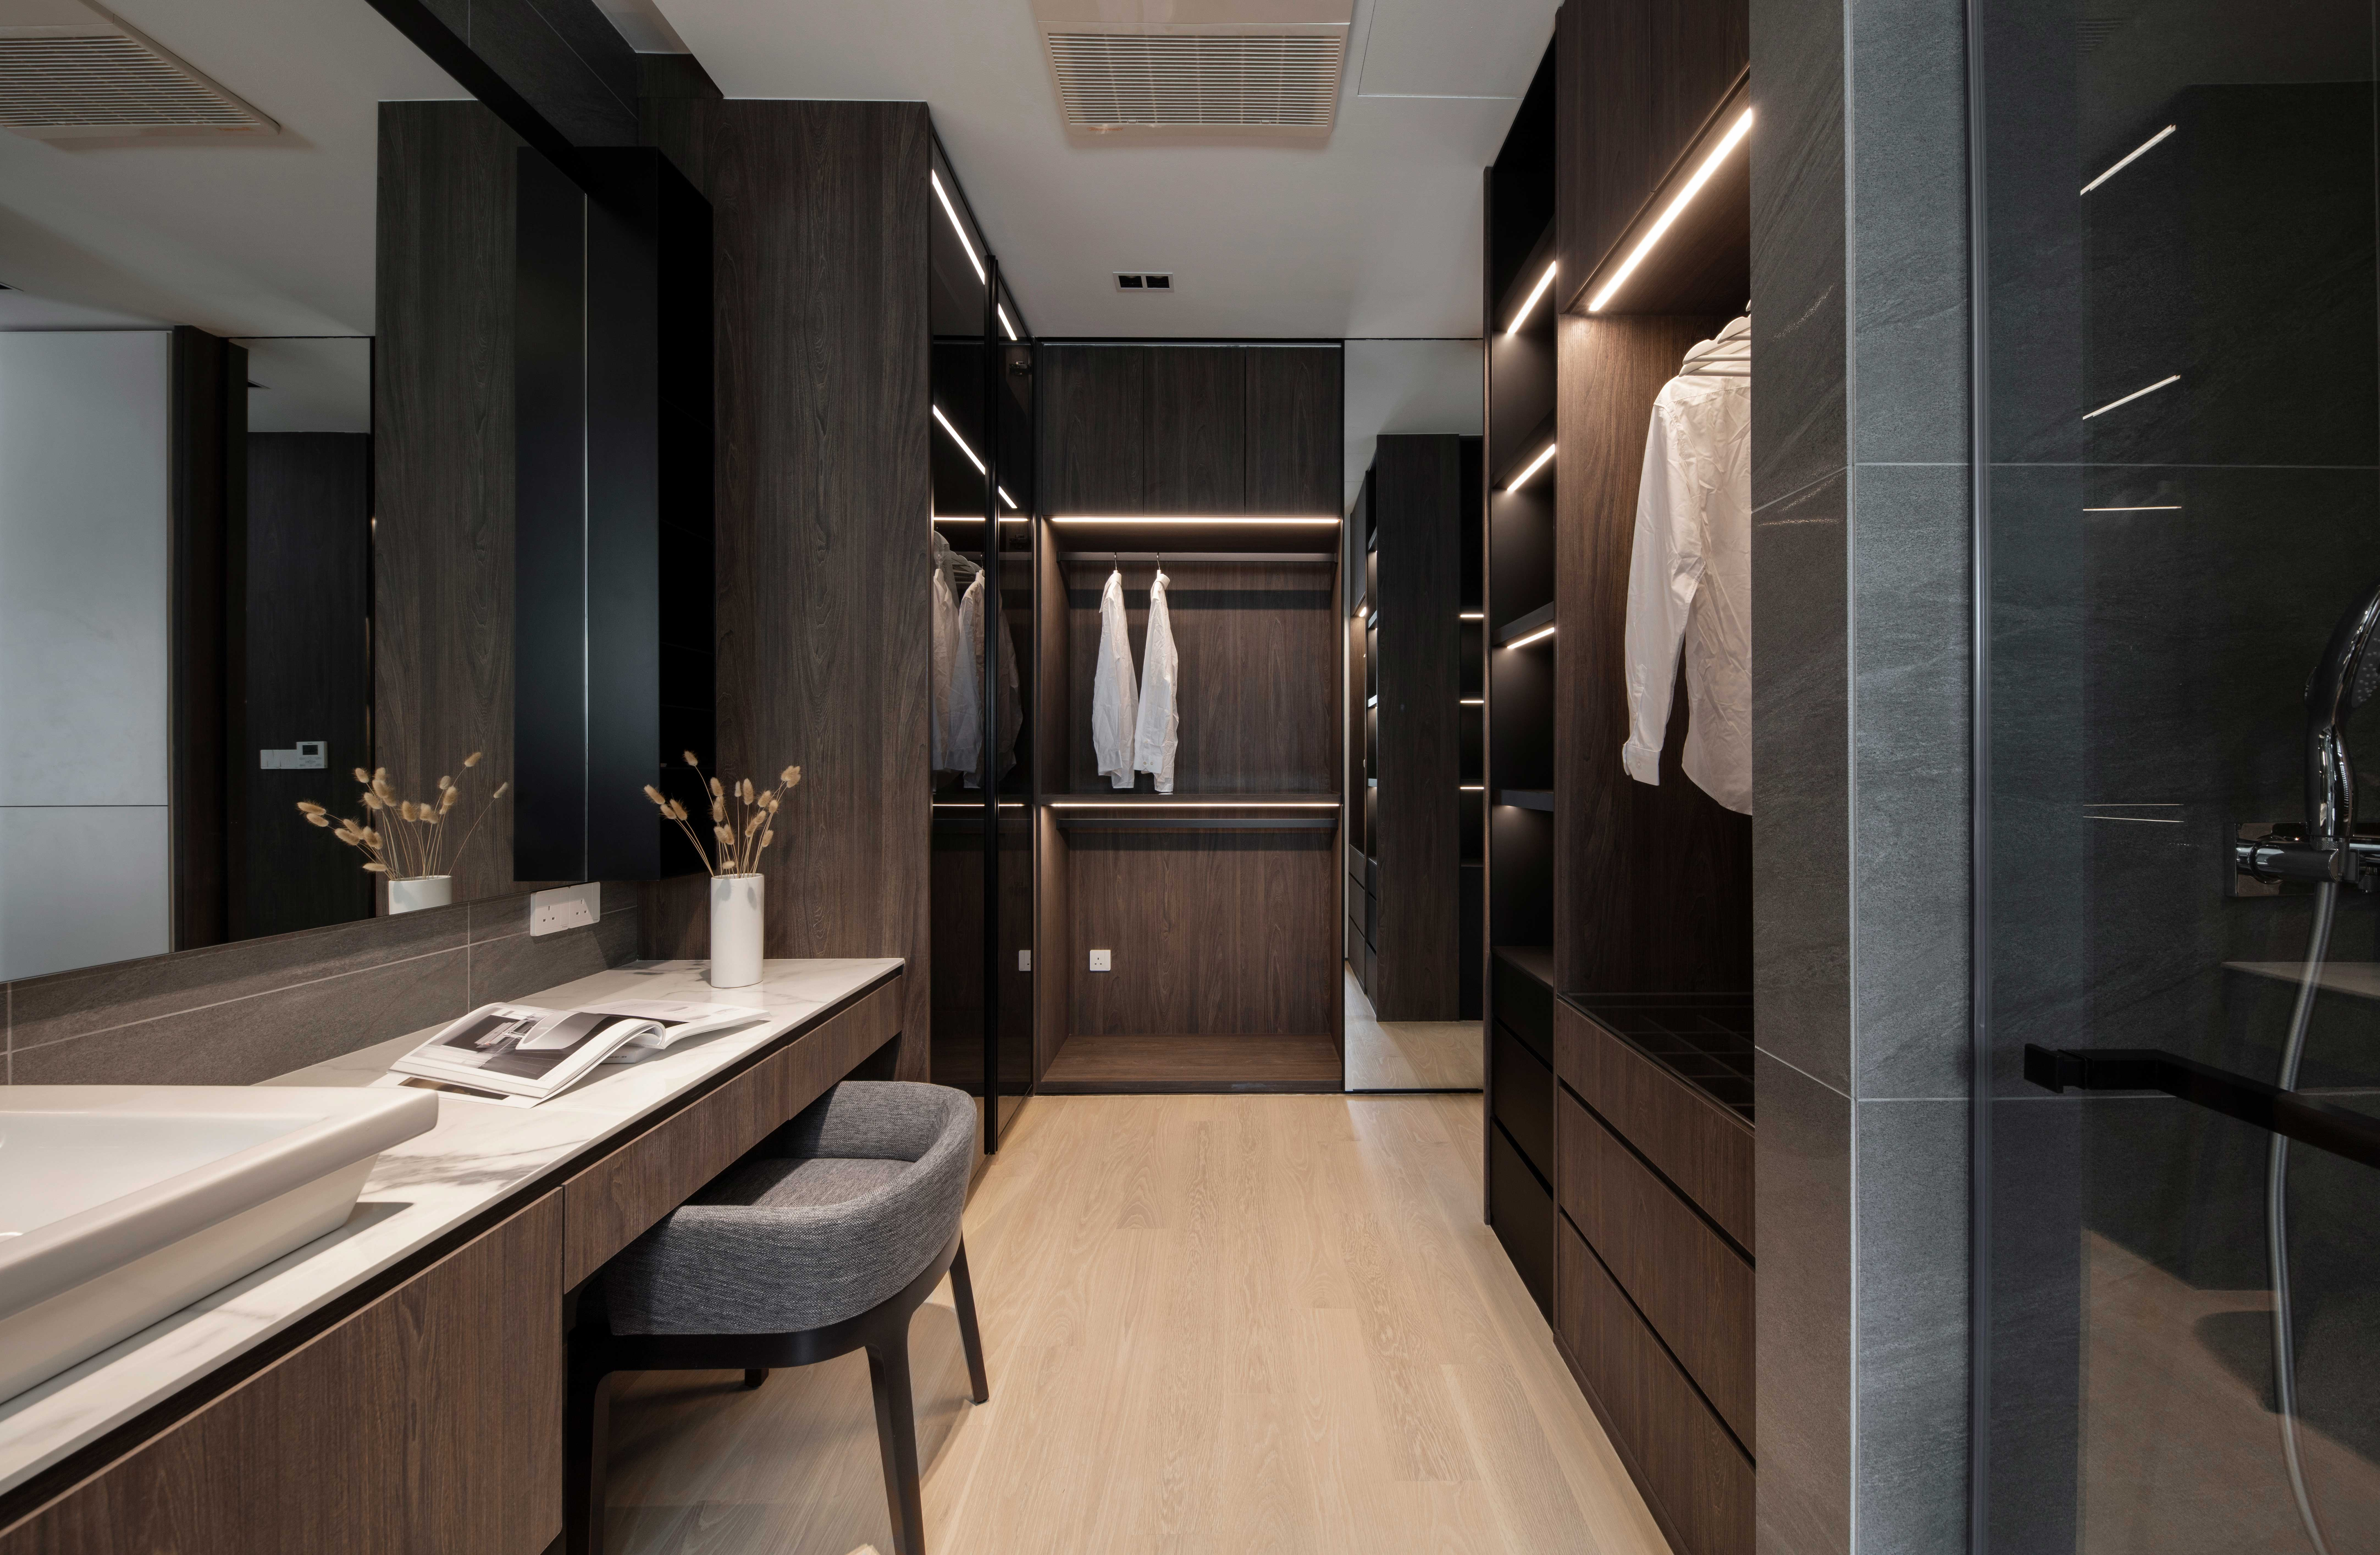 Walk in wardrobe & bathroom